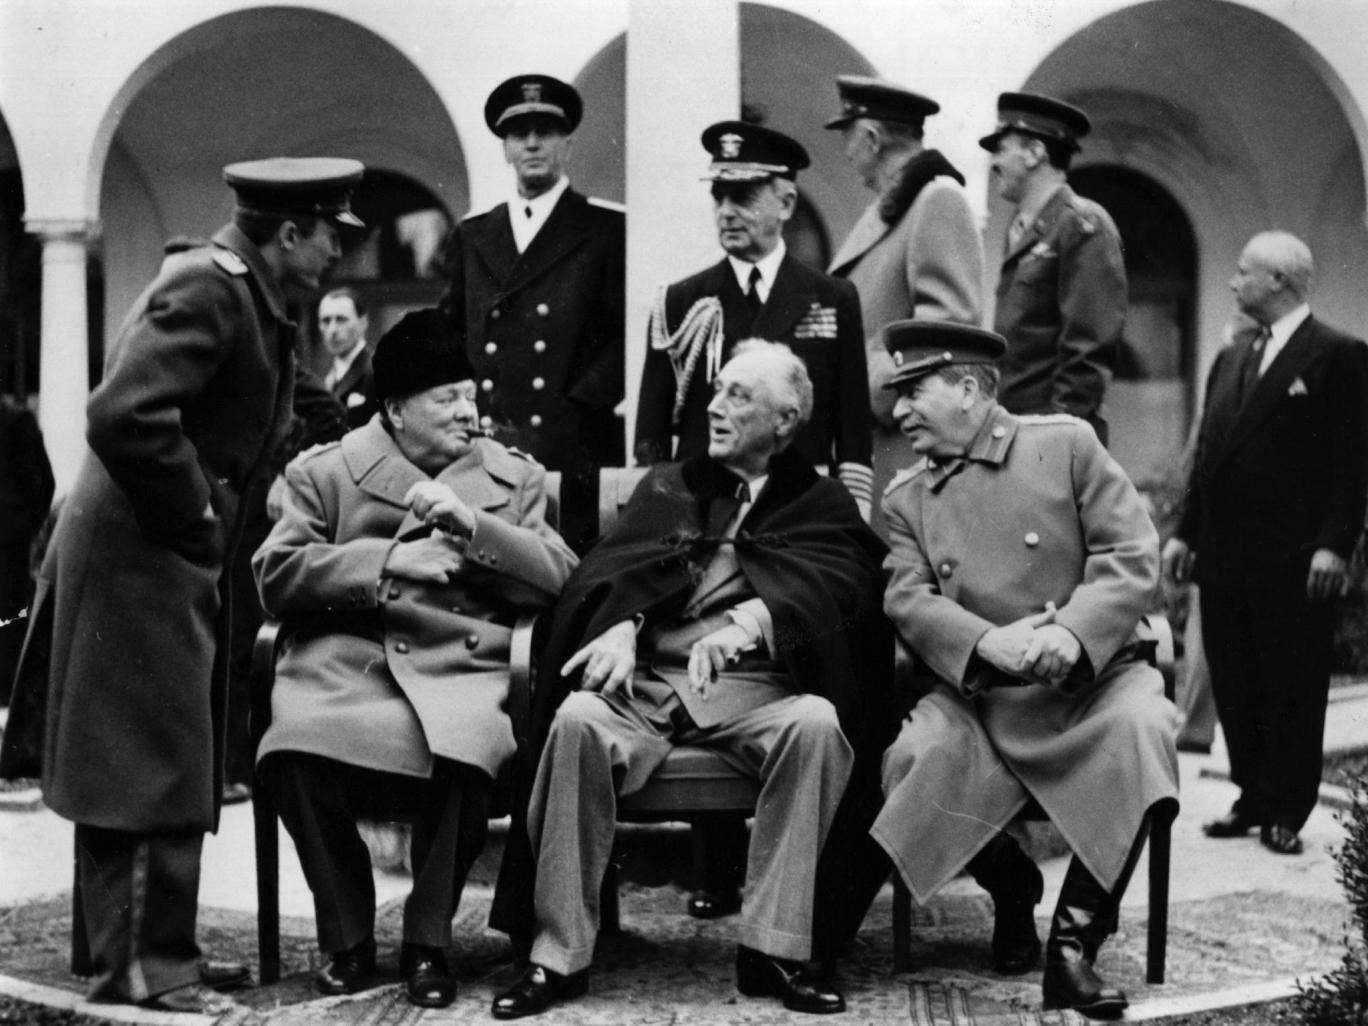 In the grounds of the Livadia Palace, Yalta, during the Three Power Conference the British wartime Prime Minister Sir Winston Leonard Spencer